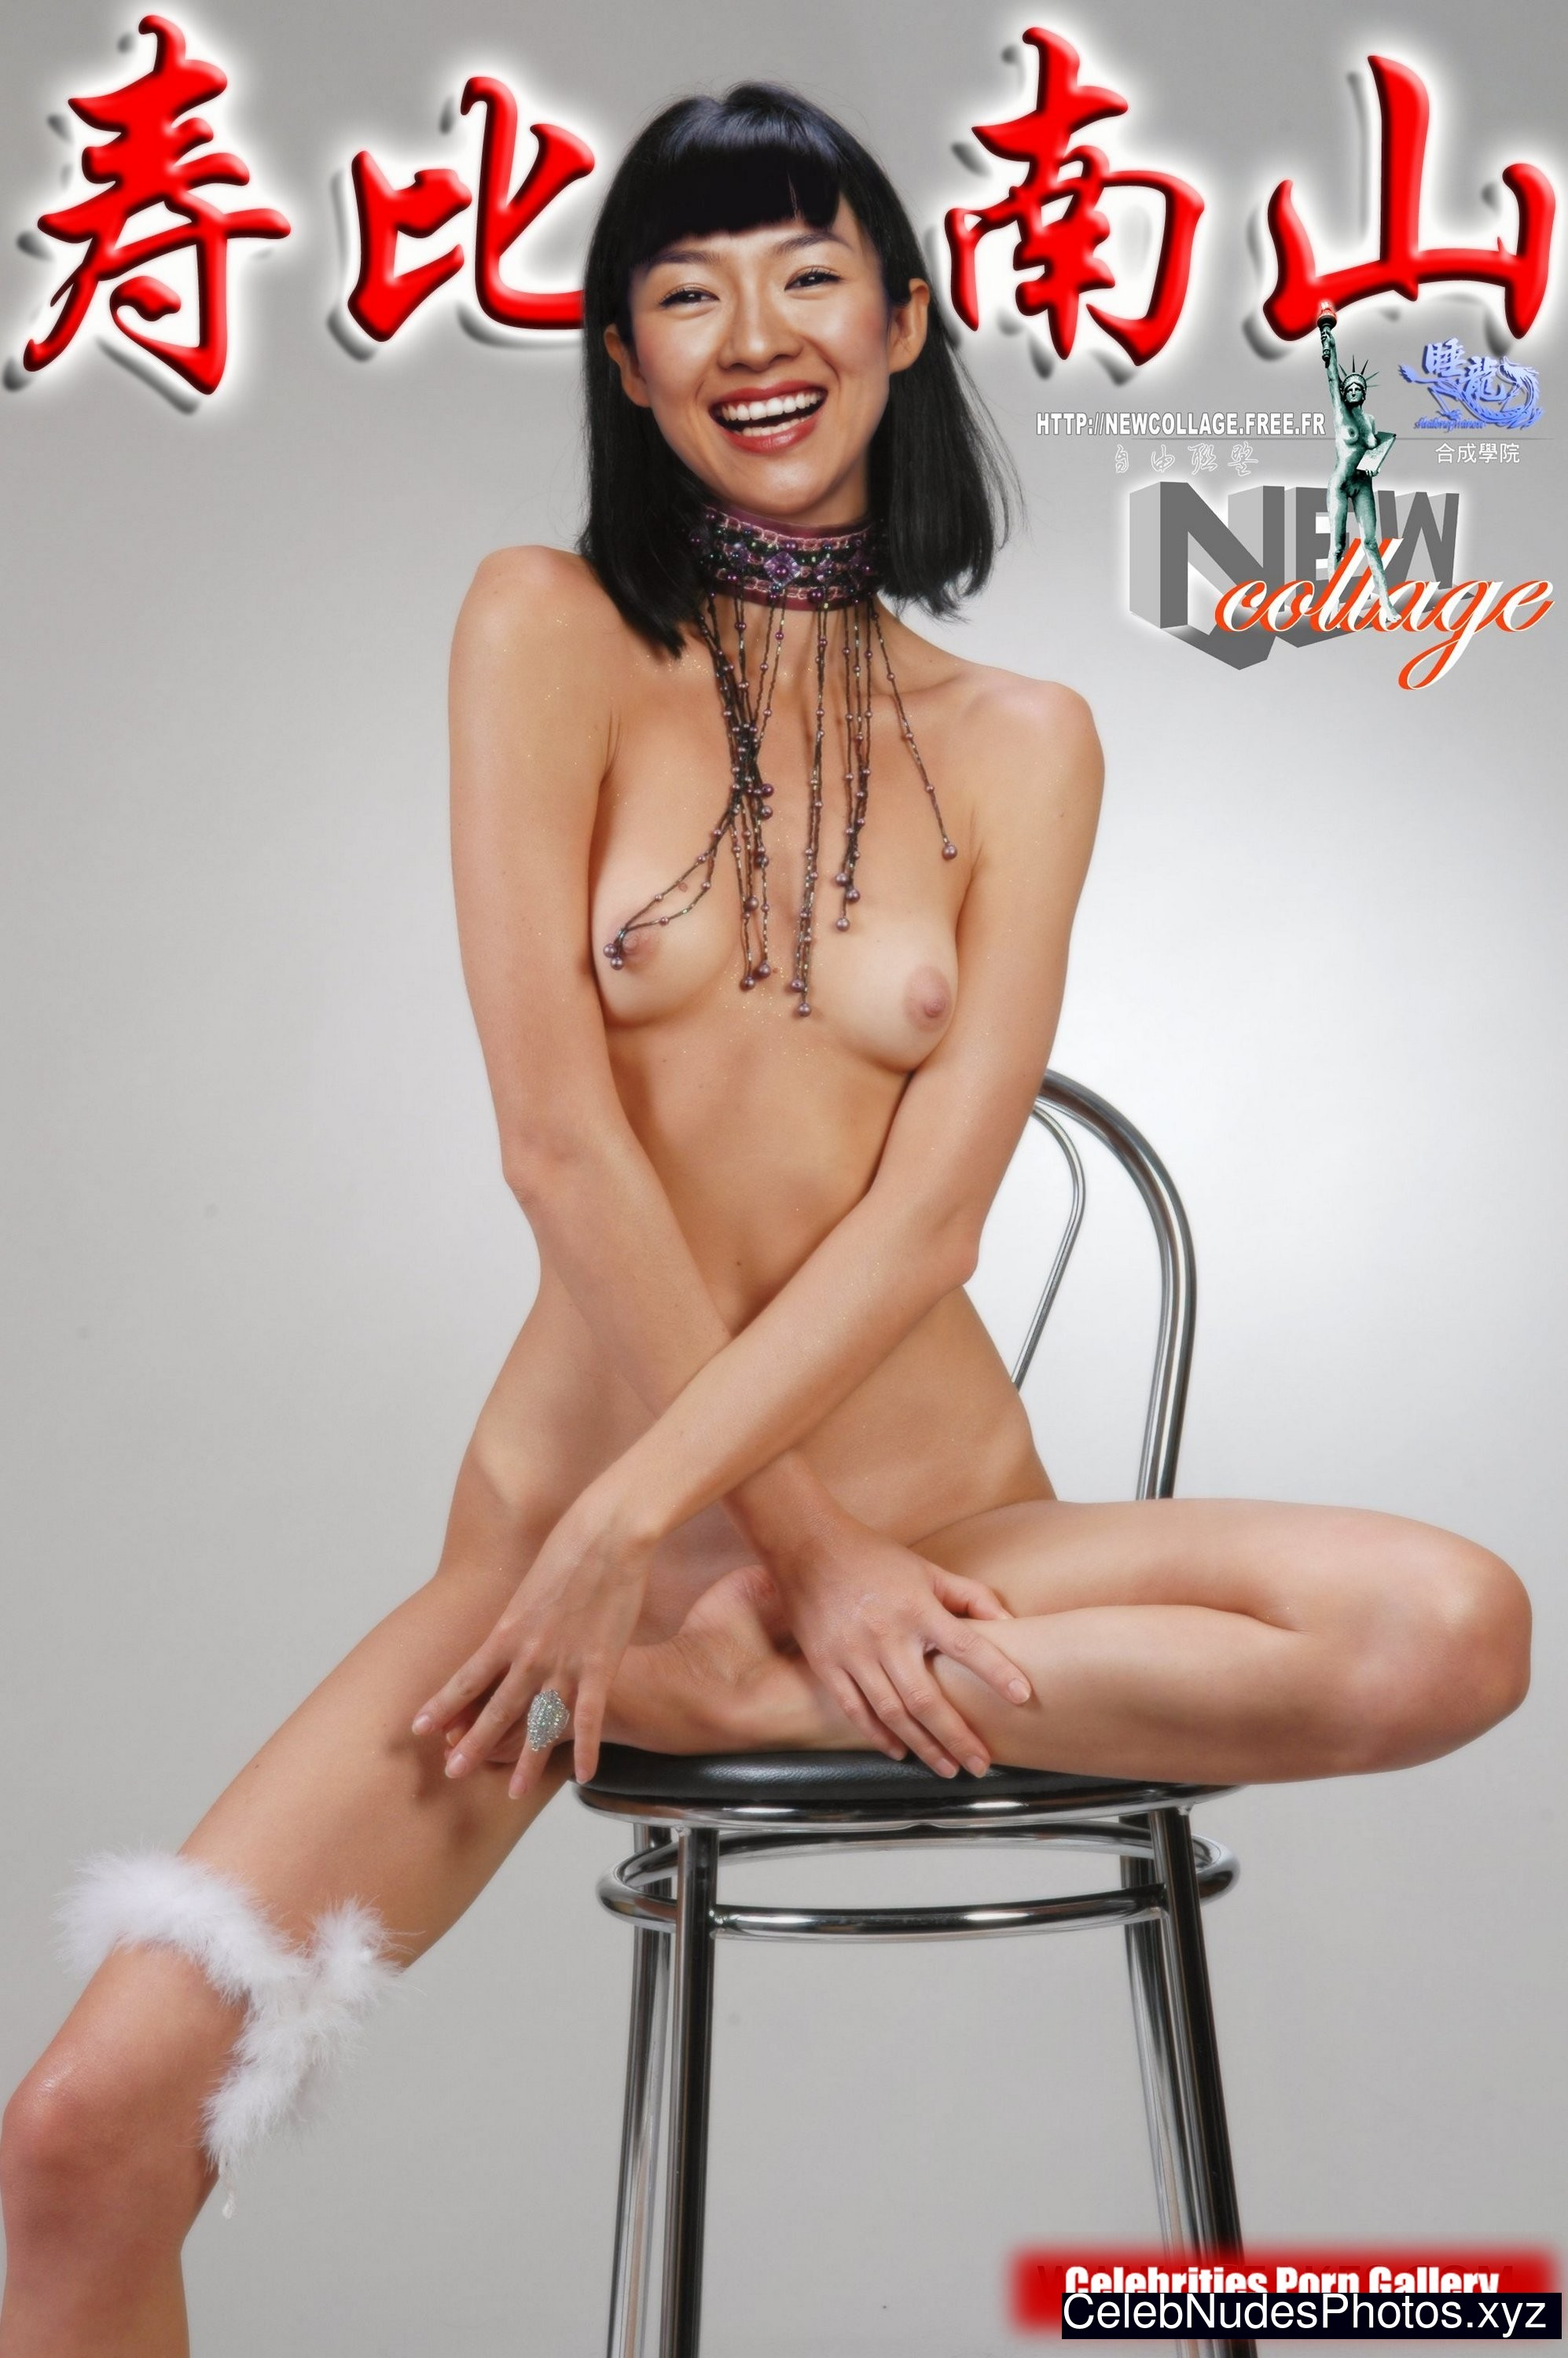 There Zhang ziyi nude or naked opinion